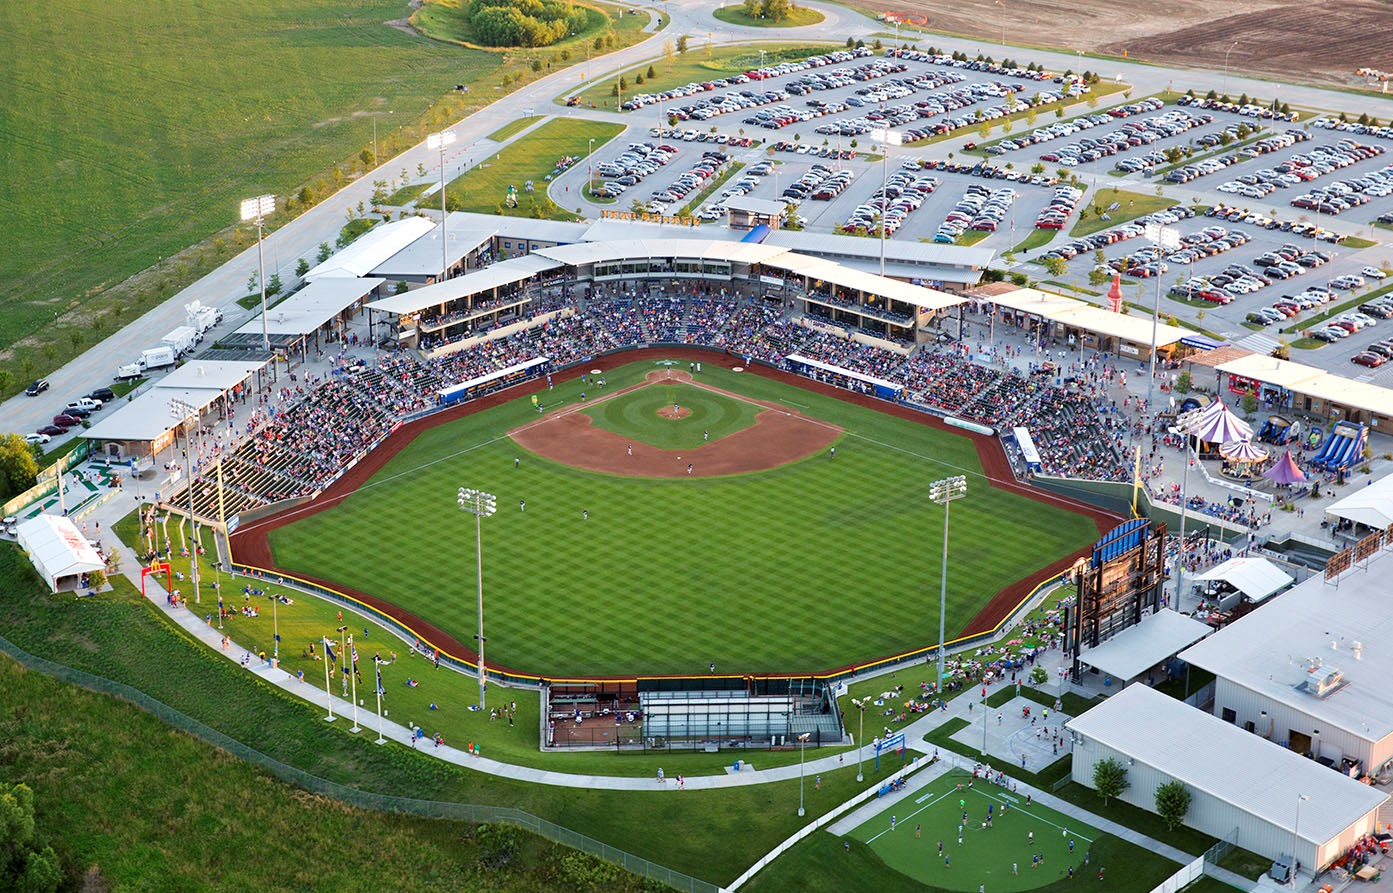 Werner Park  is a unique outdoor venue which is home to the Omaha Storm Chasers, the Triple-A Affiliate of the Kansas City Royals. Built in 2011, the stadium has 6,434 seats, 15 Luxury Suites, 3 Hospitality Tents, an Indoor Bar, Boardroom Space, and total capacity of 9,023. Sarpy County, NE owns the facility which is operated by the Omaha Storm Chasers Baseball Club. In addition to 70 Storm Chasers Baseball games, each year Werner Park provides a unique outdoor venue for corporate events, concerts, charity walks, and much more.